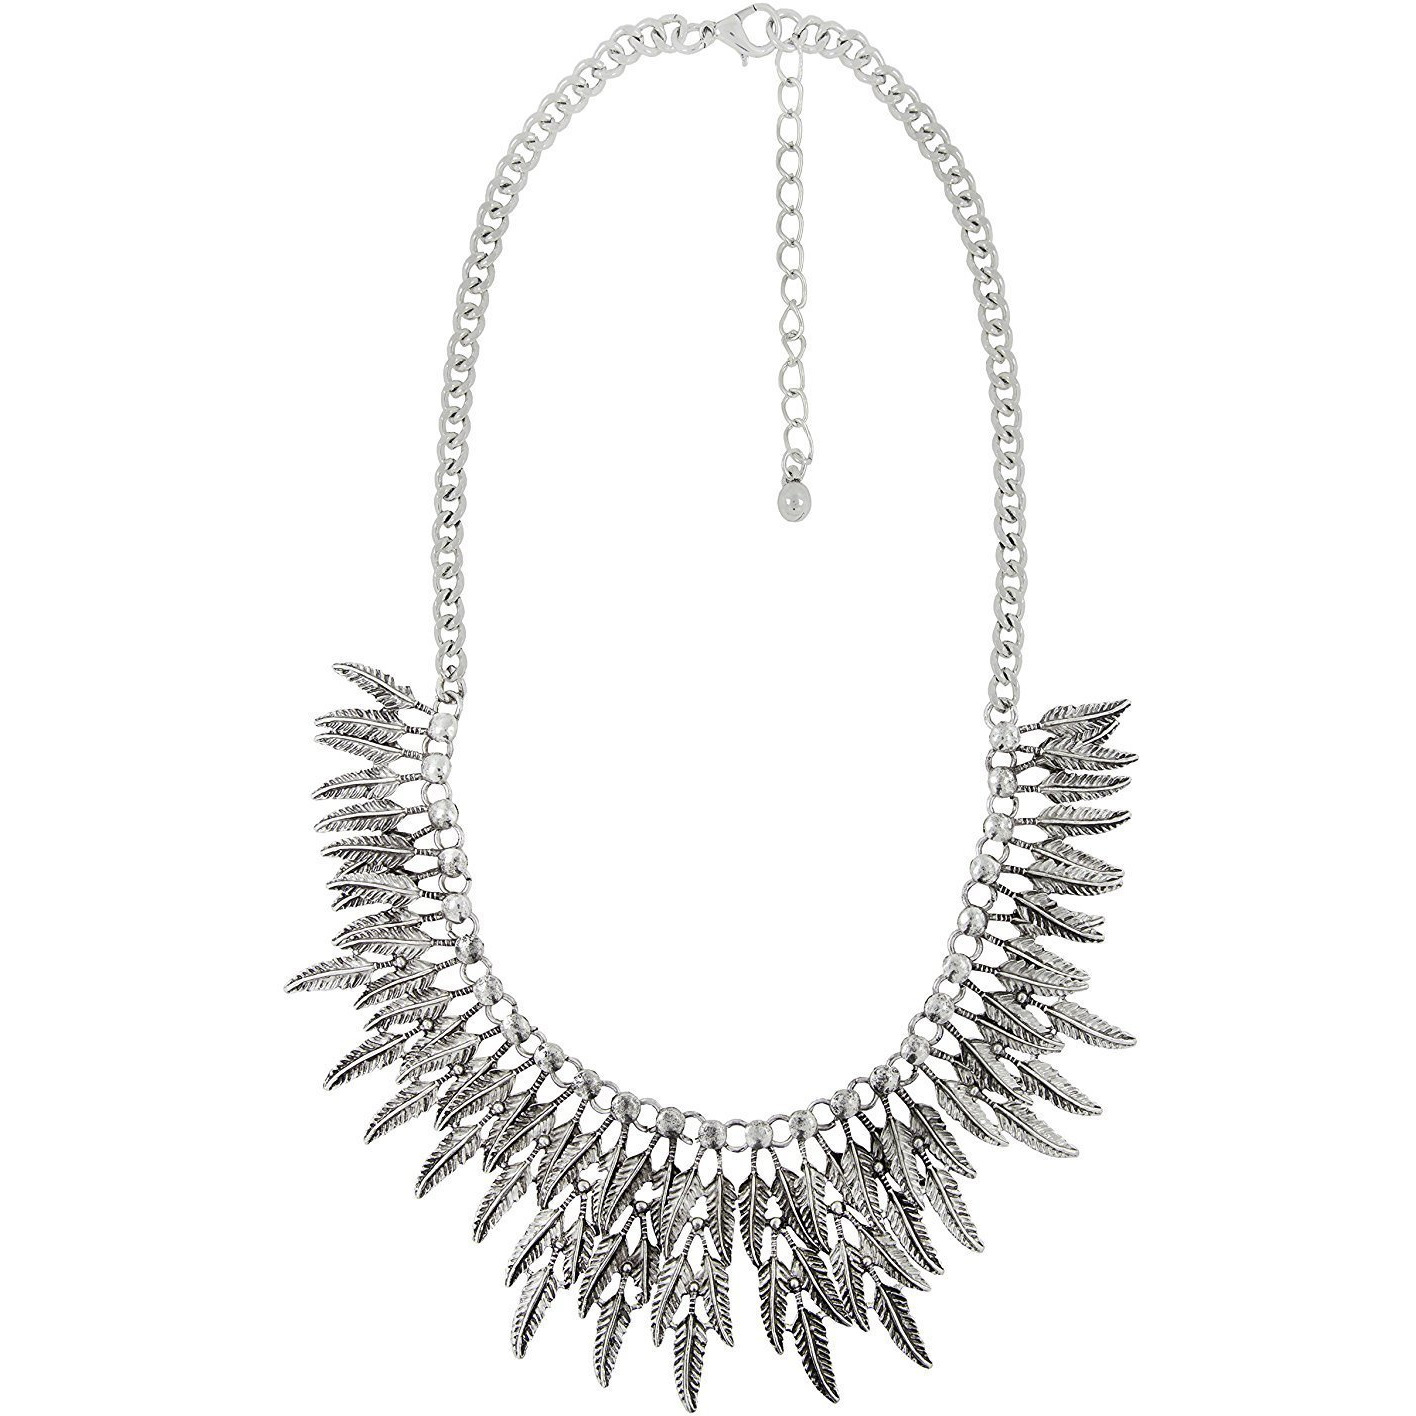 Zivom Tribal Bohemian Afghan Leaf Statement Grey Crystal Antique Oxidized Silver Necklace Chain Girls Women